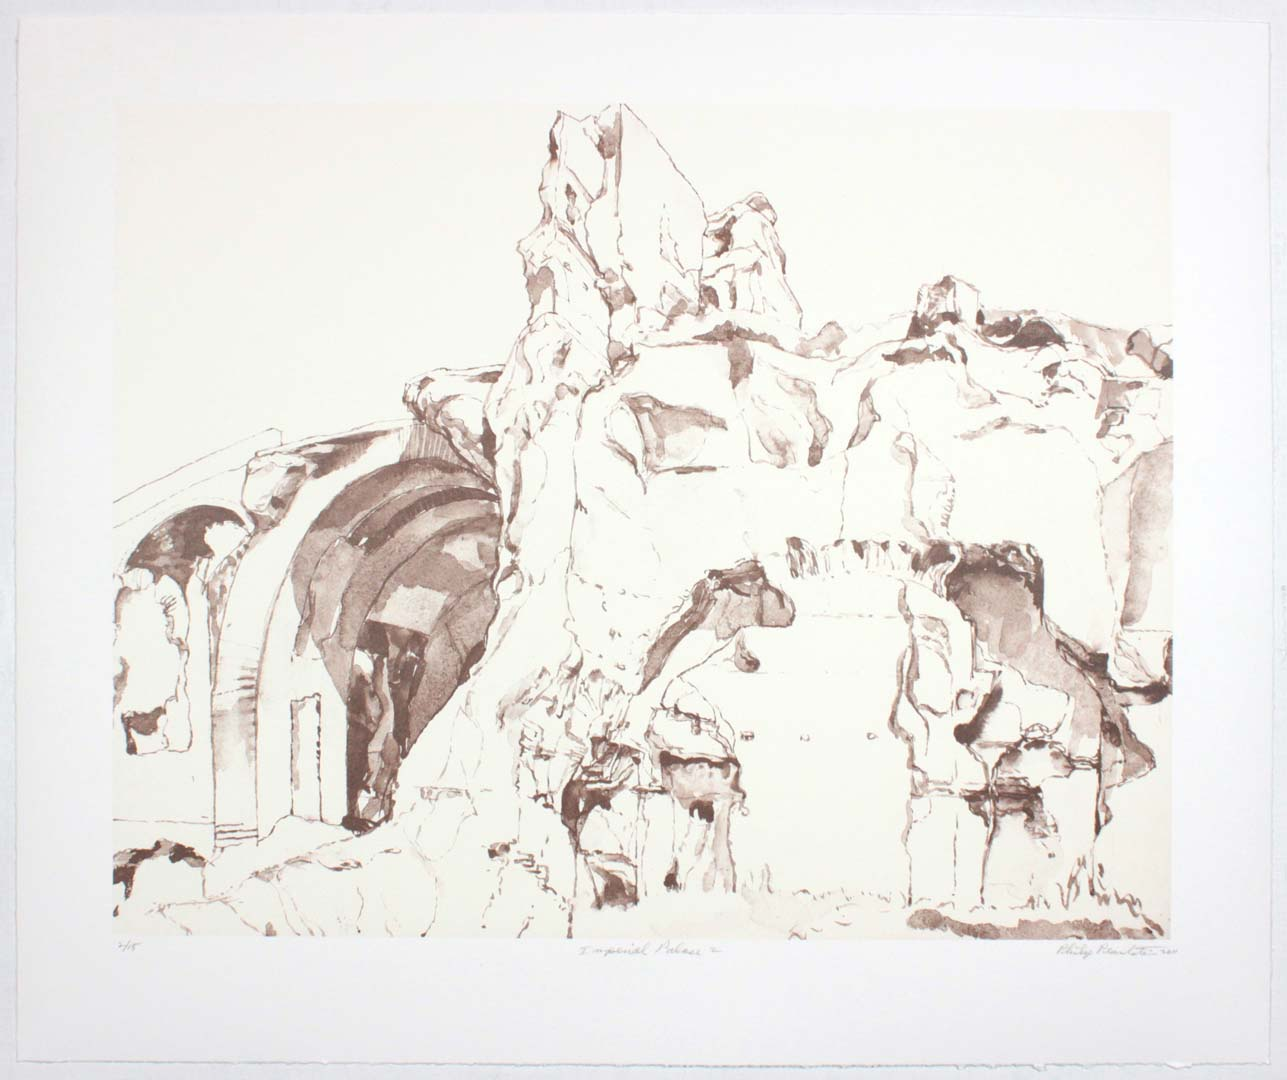 "2011 Imperial Palace #2 Lithograph on Paper 20.625"" x 24.625"""